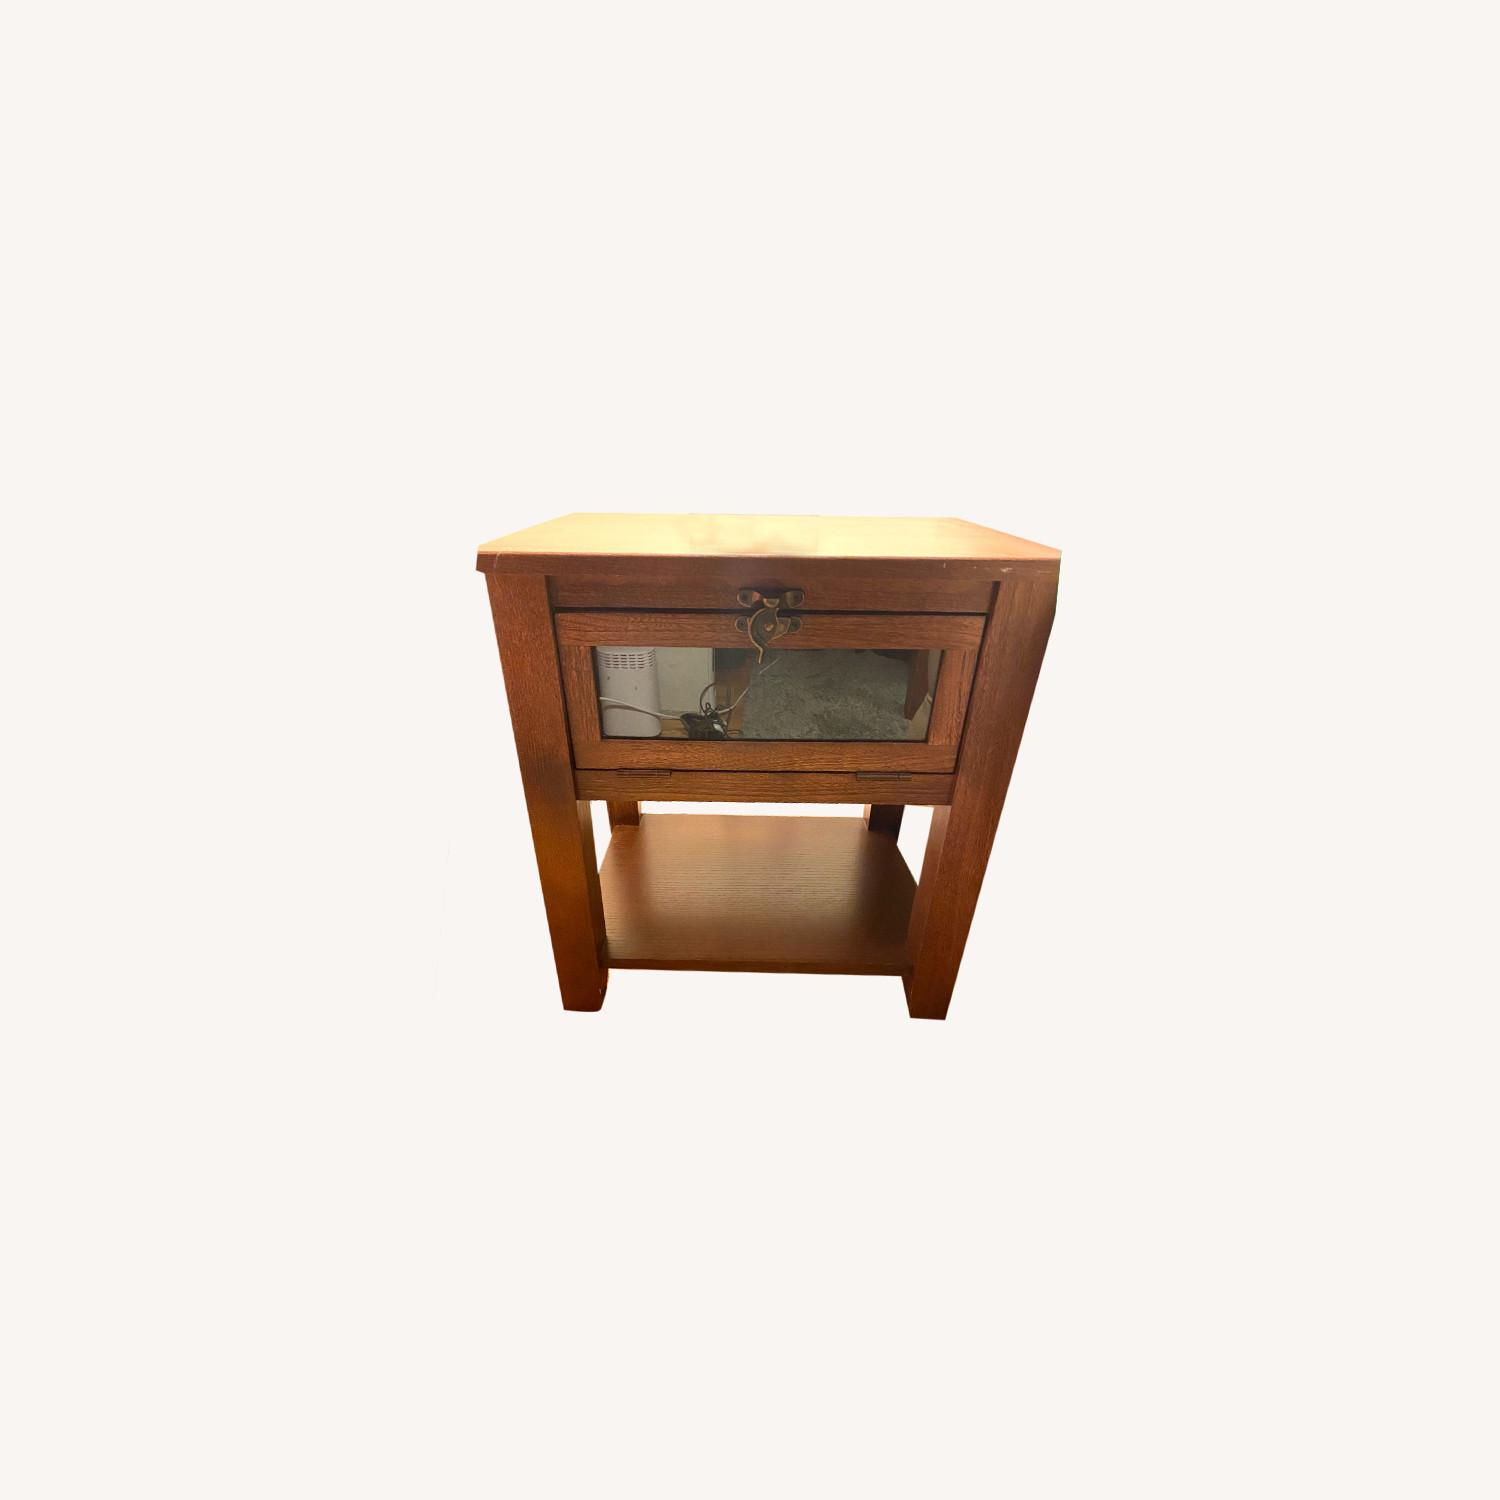 Oak Living Room Side Tables - image-0